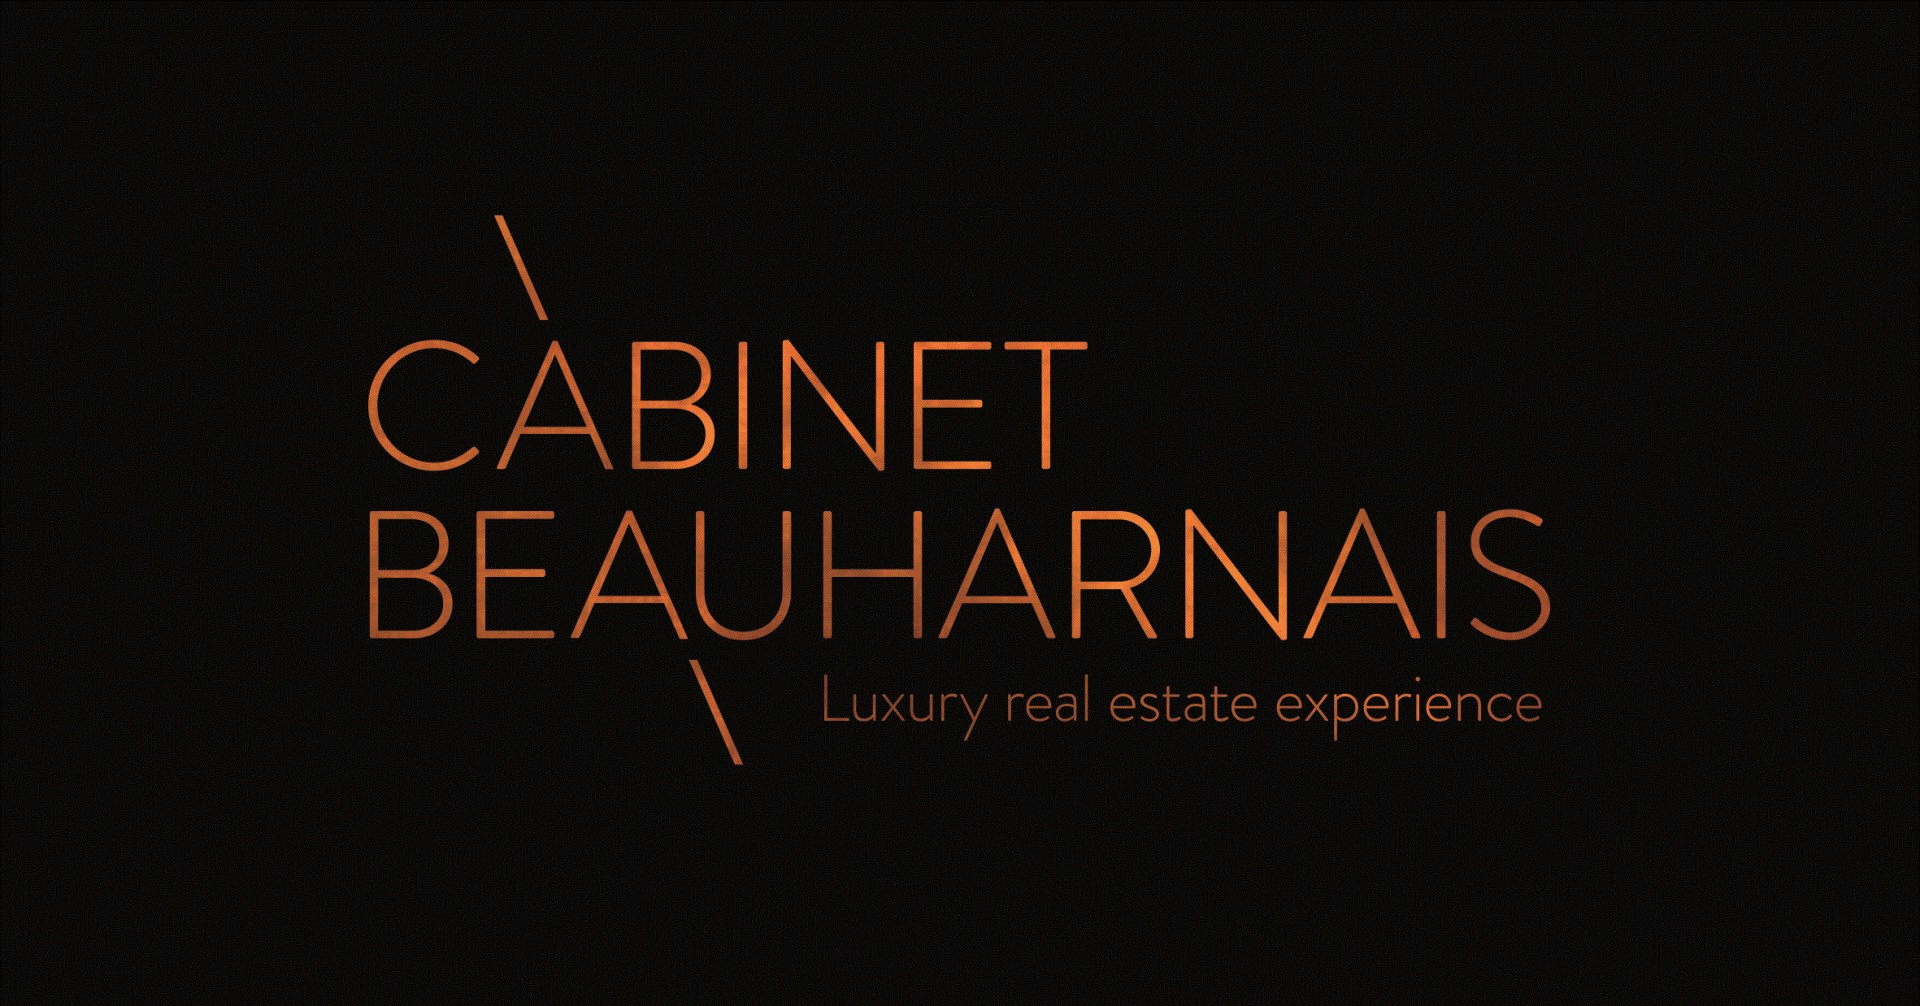 Real estate agency CABINET BEAUHARNAIS in Clermont Ferrand